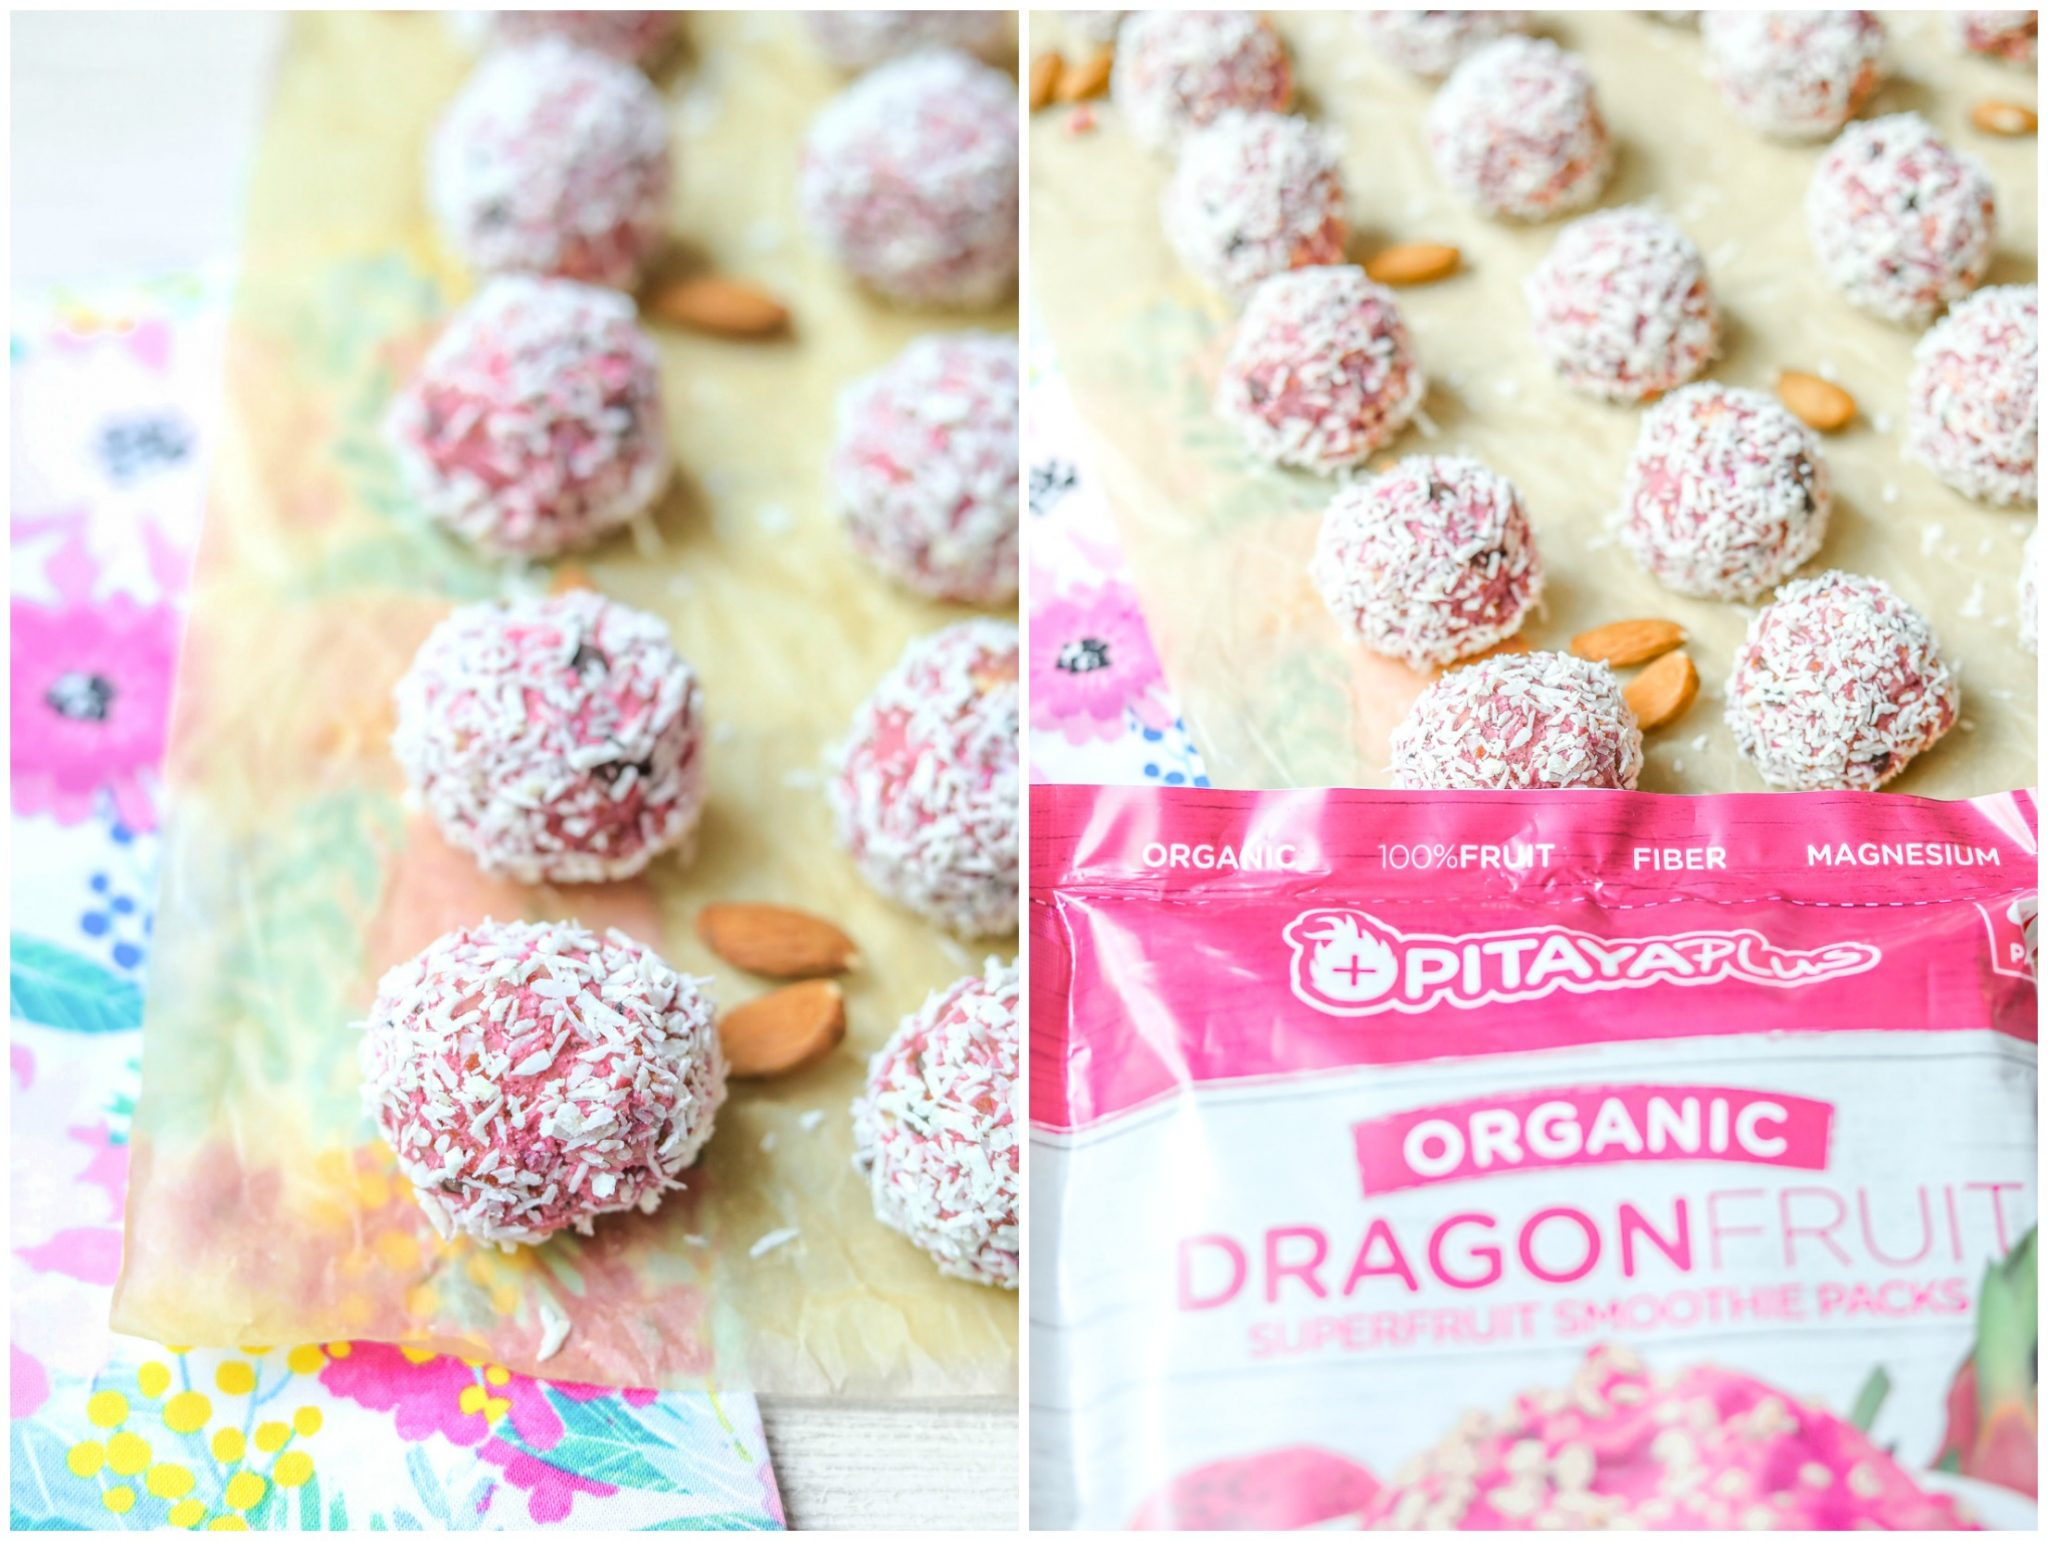 Delicious energy protein balls filled with dragon fruit almonds coconut protein powder dates and vegan chocolate chips gluten free snack dairy free gluten free vegan plant based healthy on the go recipe no bake simply taralynn blog kid friendly